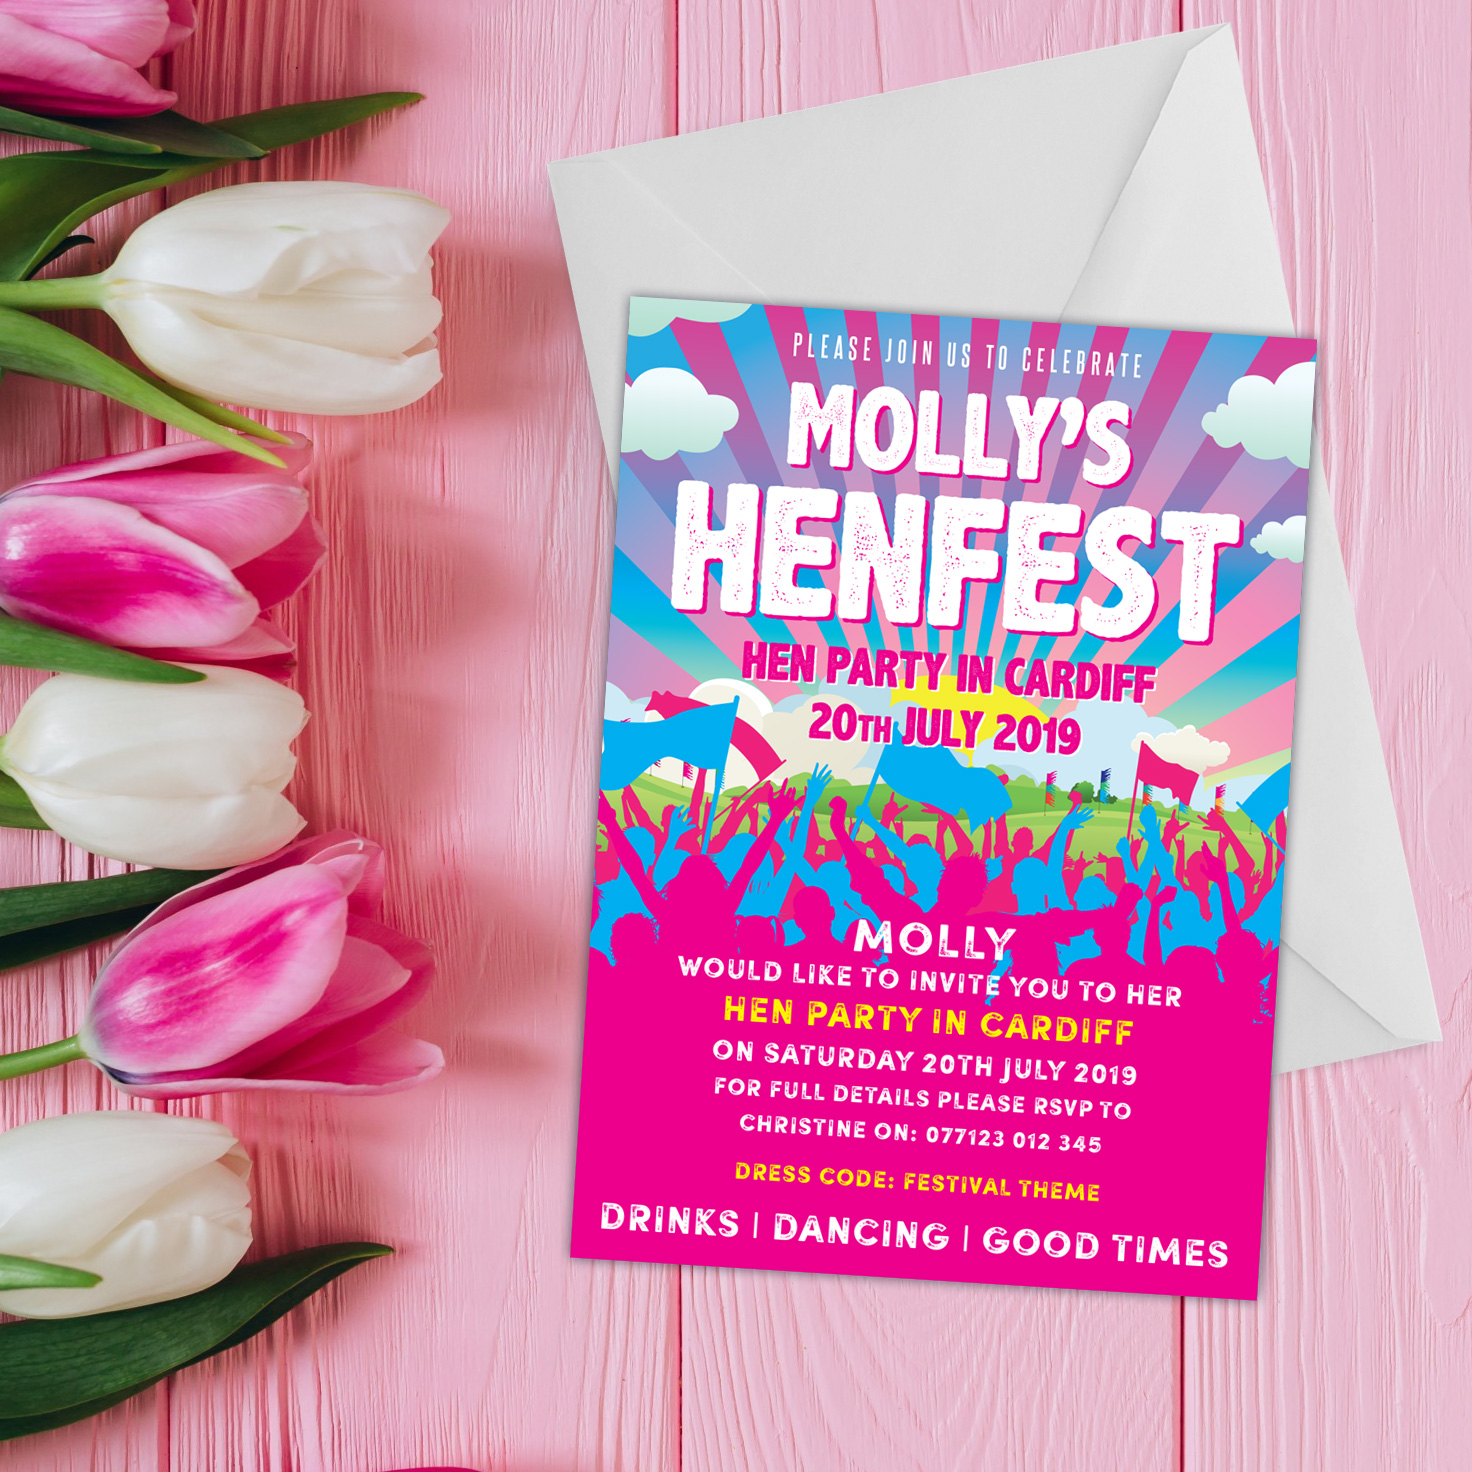 henfest festival hen party invitation